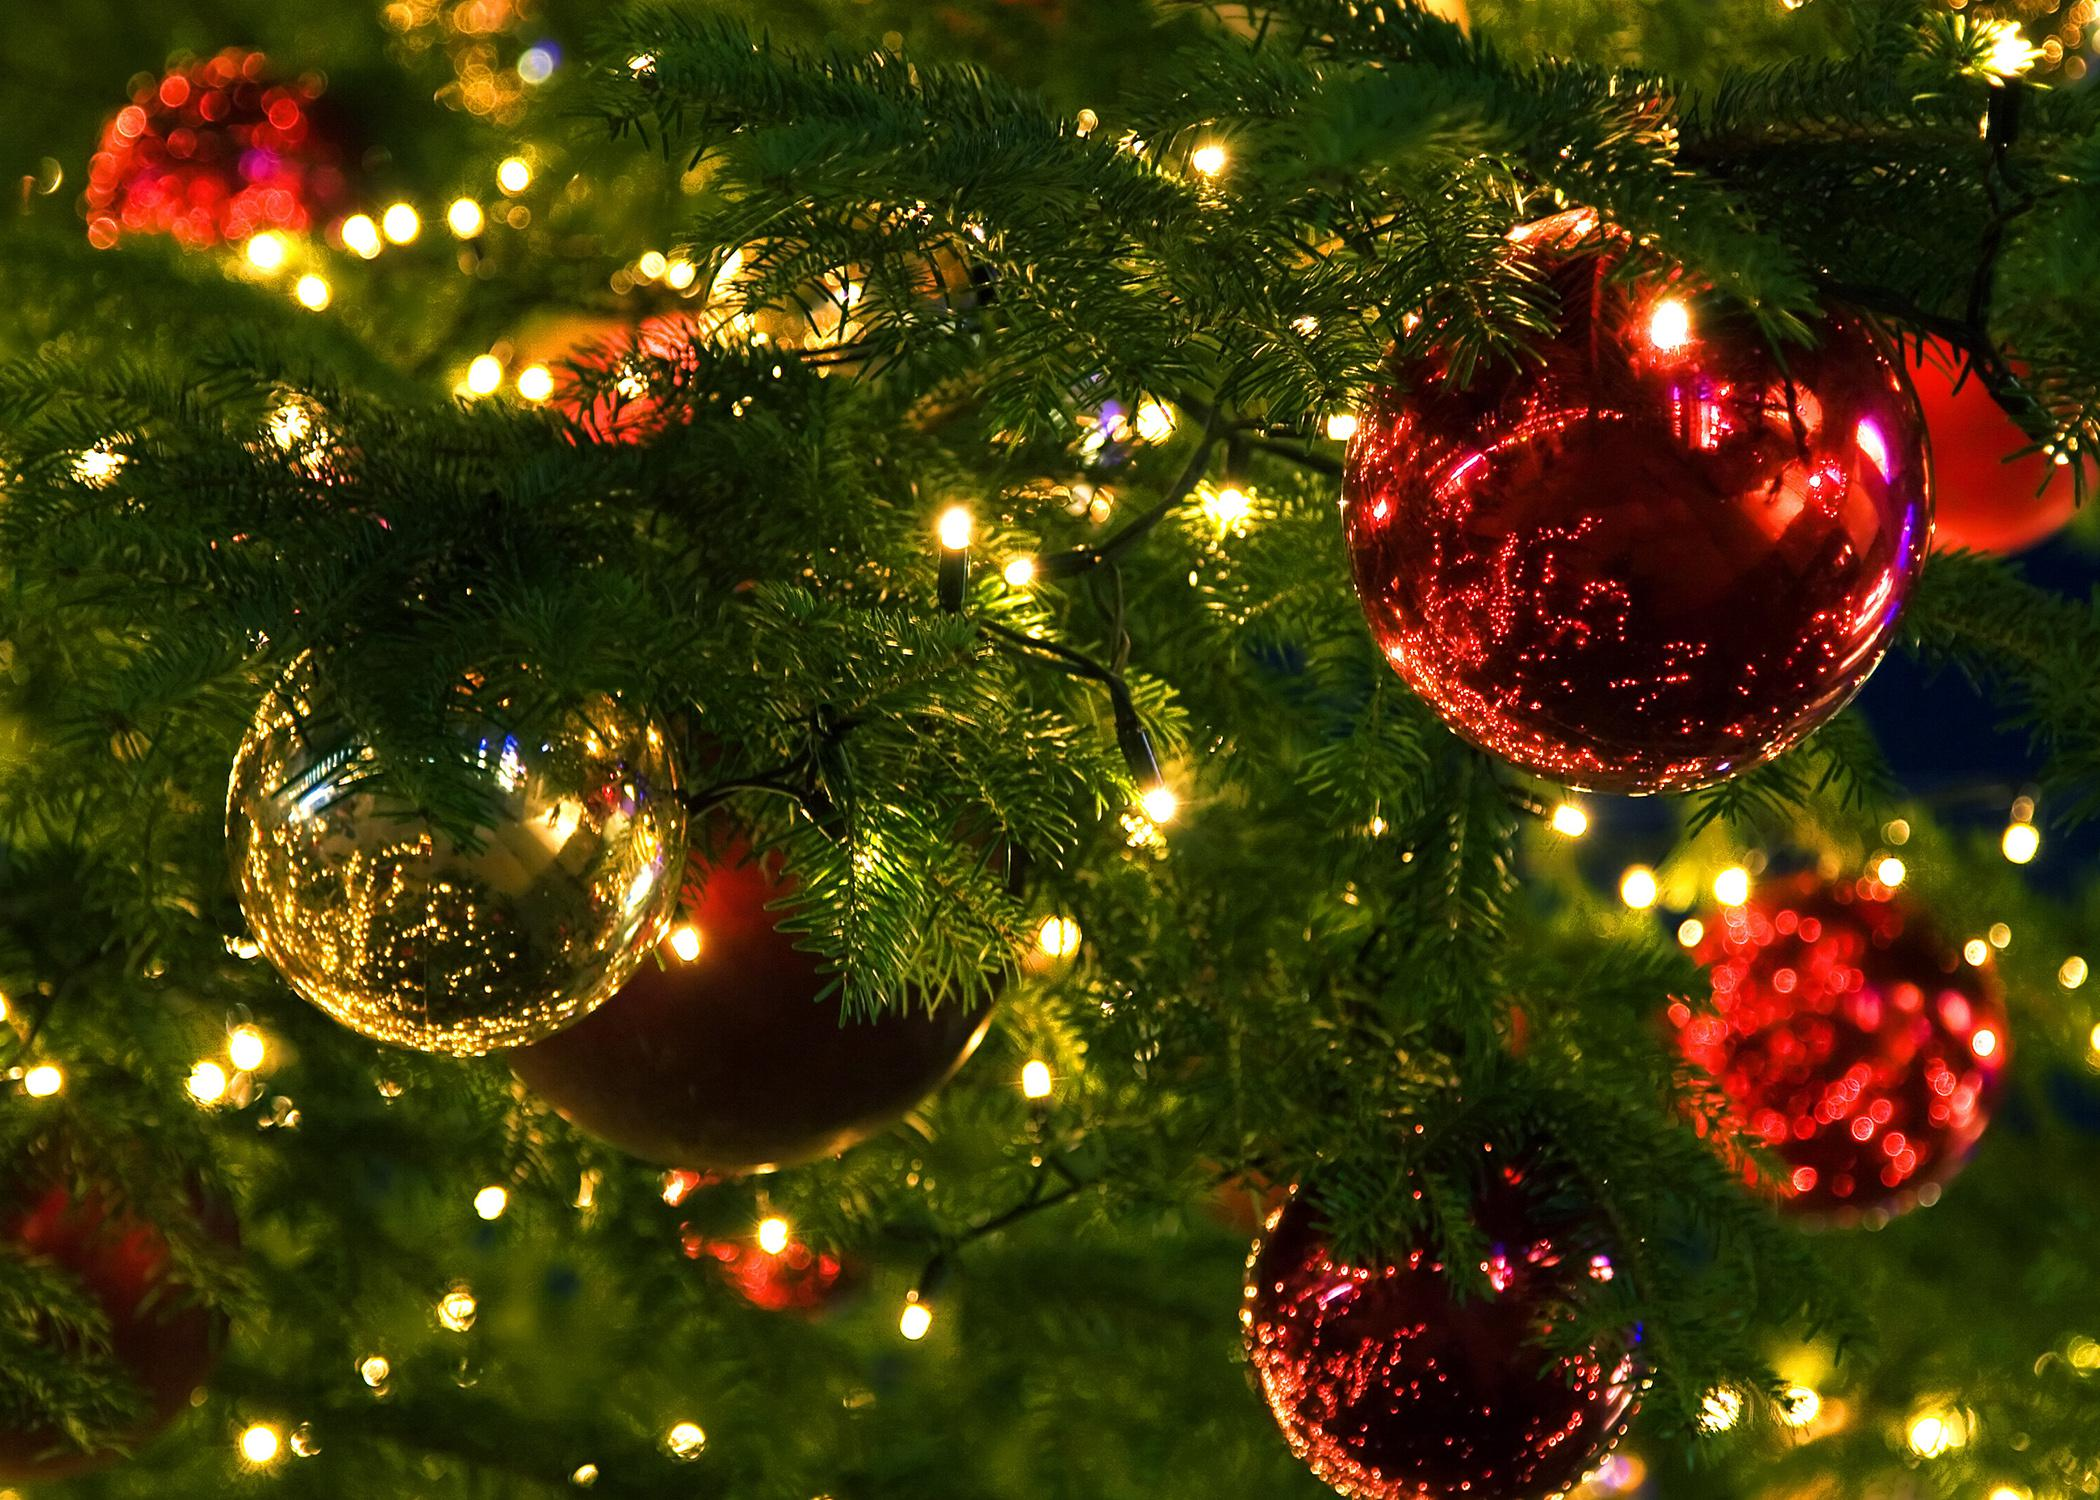 Closeup of ornaments and lights on a Christmas tree